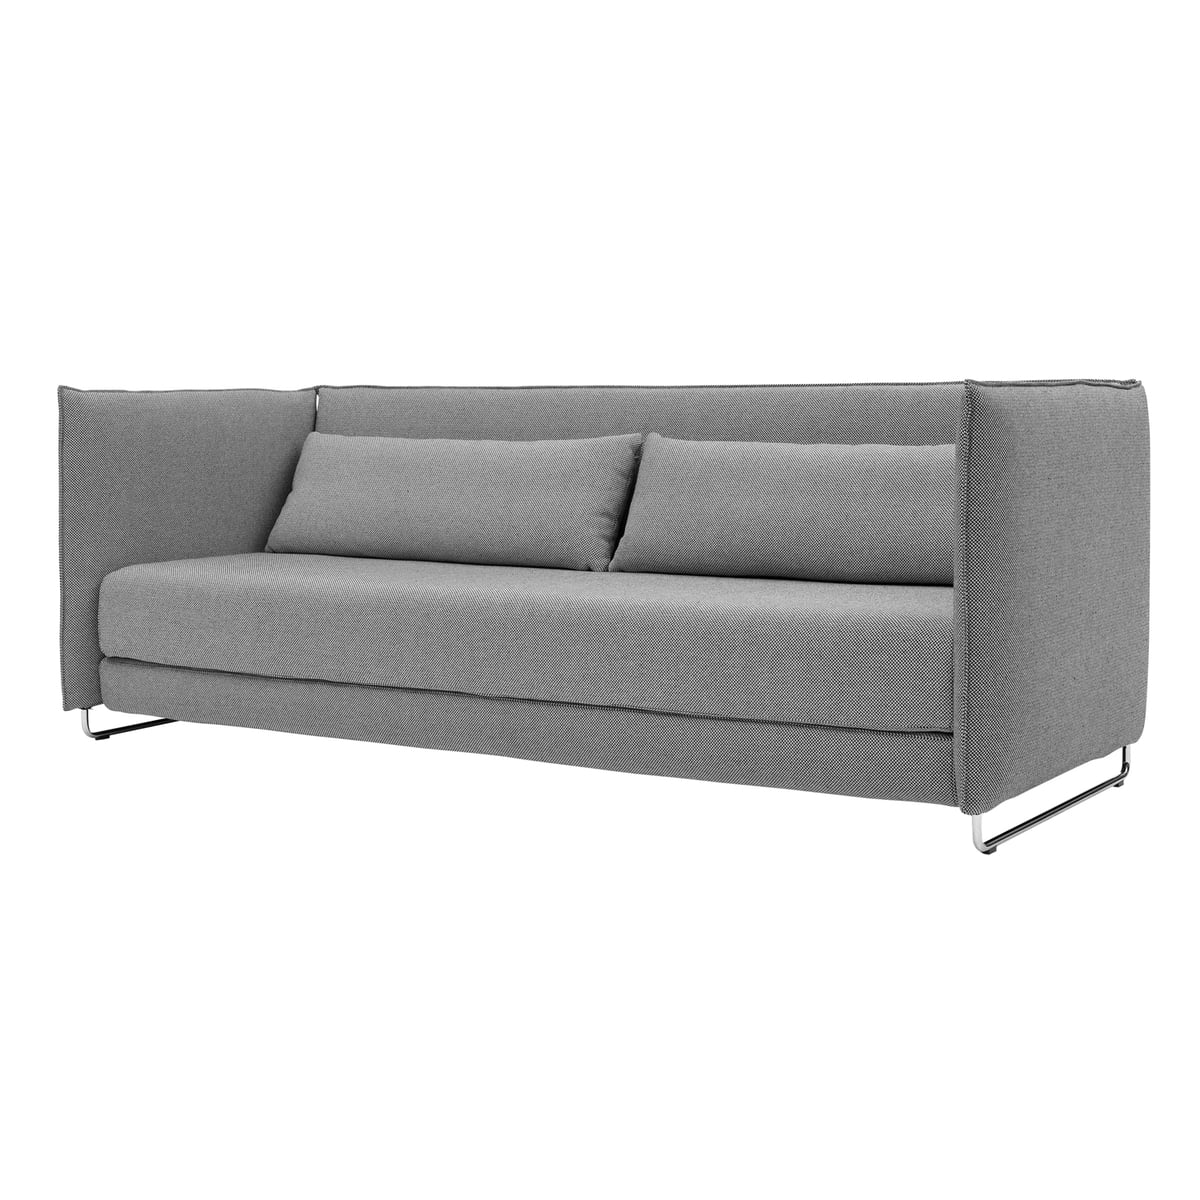 Softline Metro Bed Sofa Light Grey Front